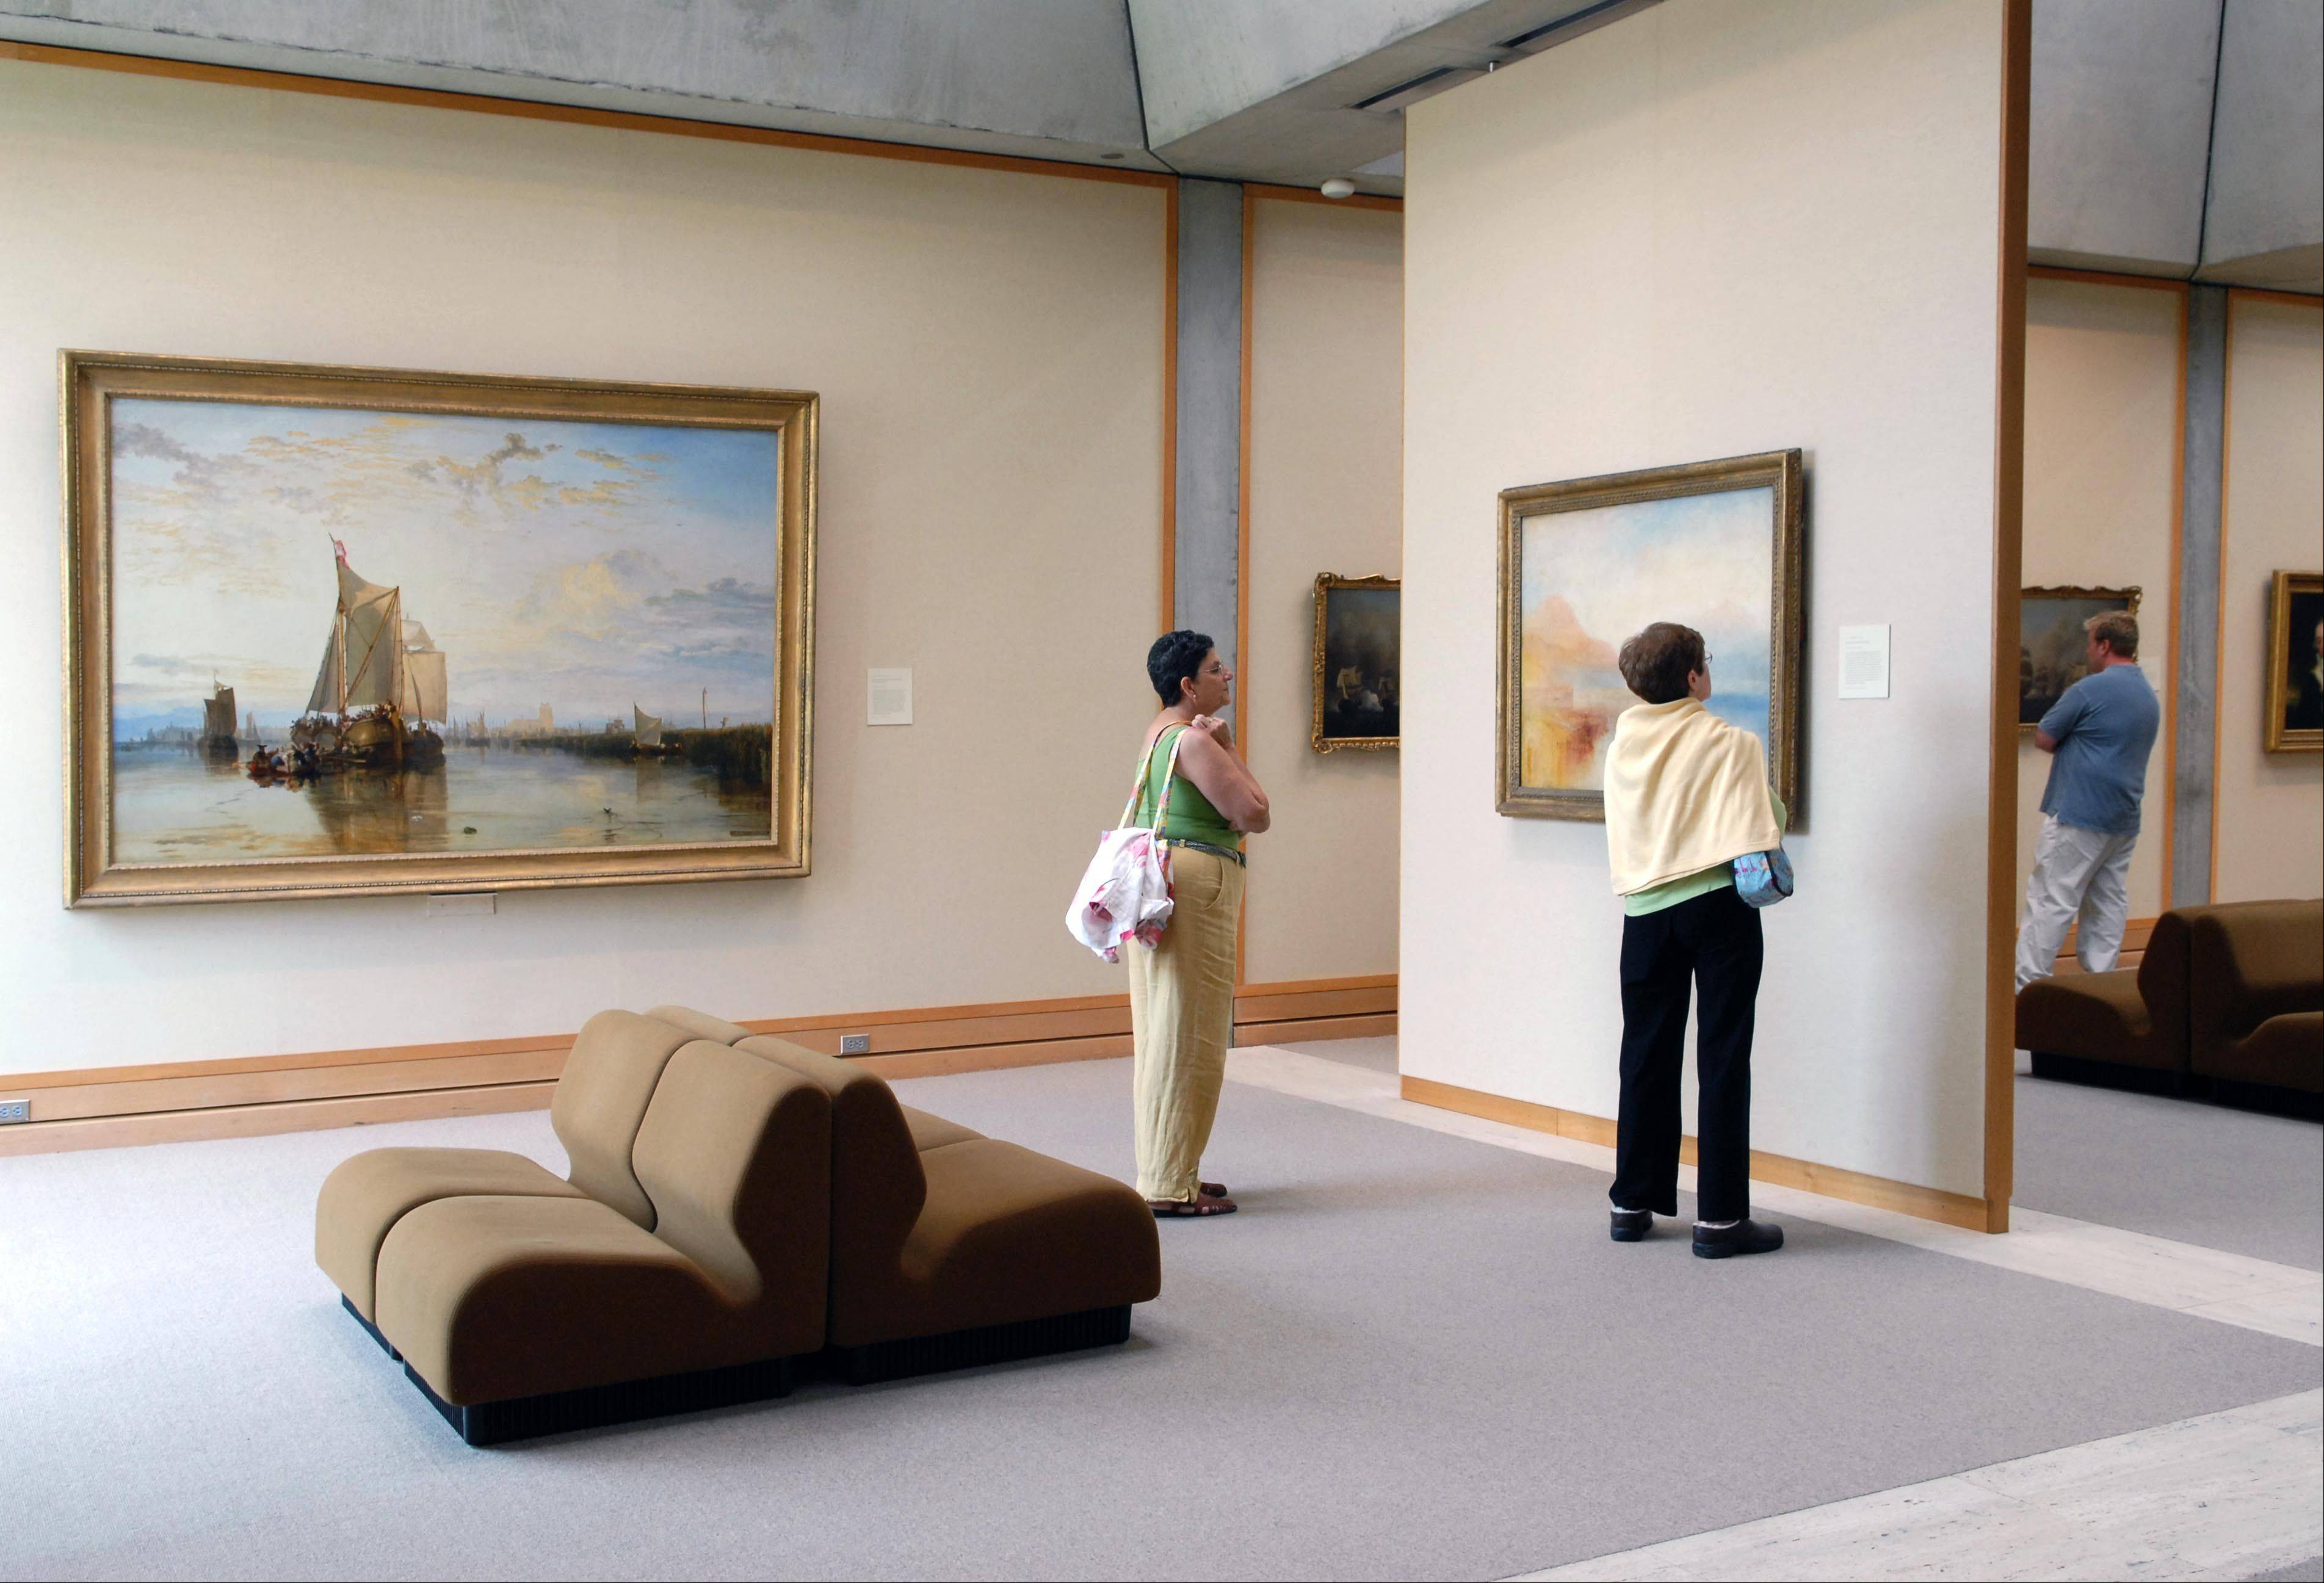 A gallery with a painting by J.M.W. Turner at the Yale Center for British Art in New Haven, Conn. The center houses the largest collection of British art outside the United Kingdom.